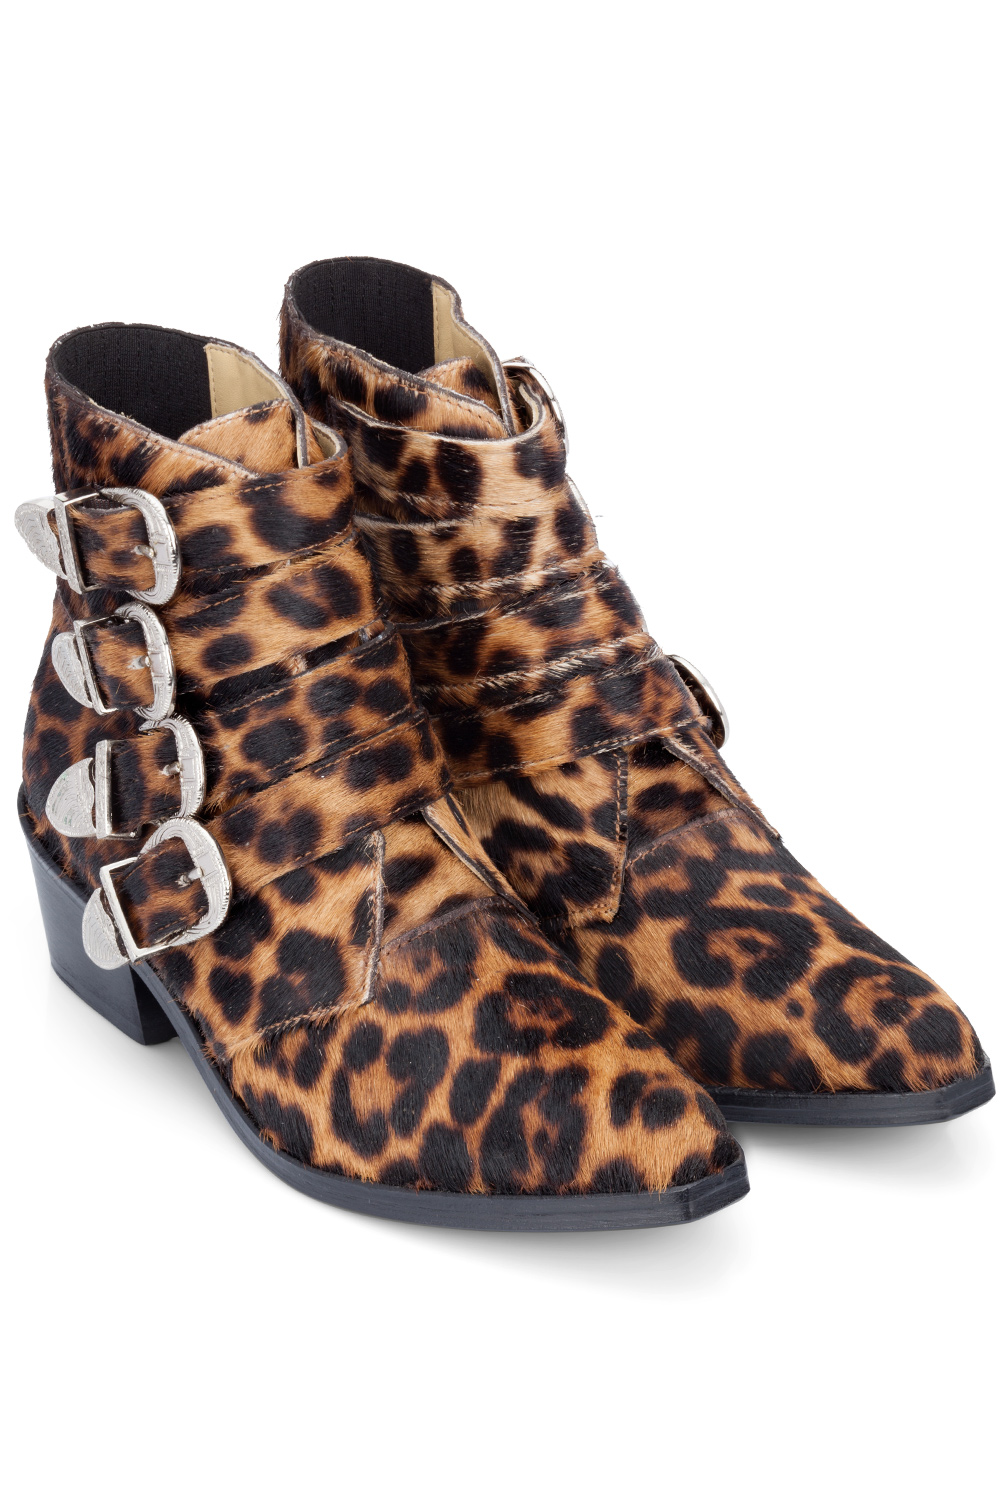 Leopard Print Shoes With Red